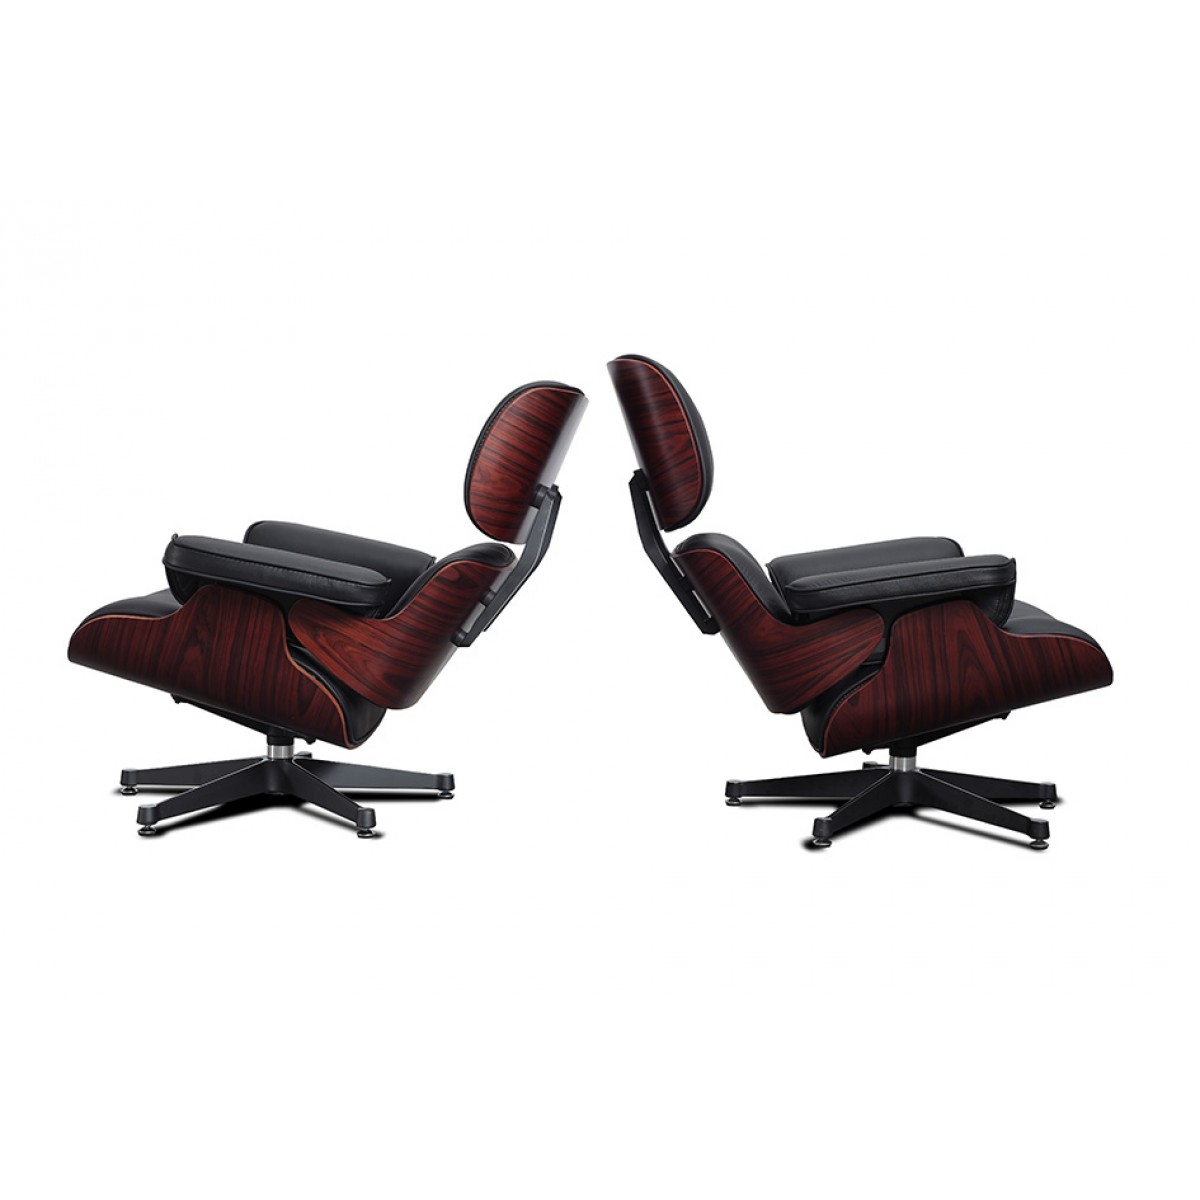 Eames lounge chair ottoman replica html - Corona chair replica ...